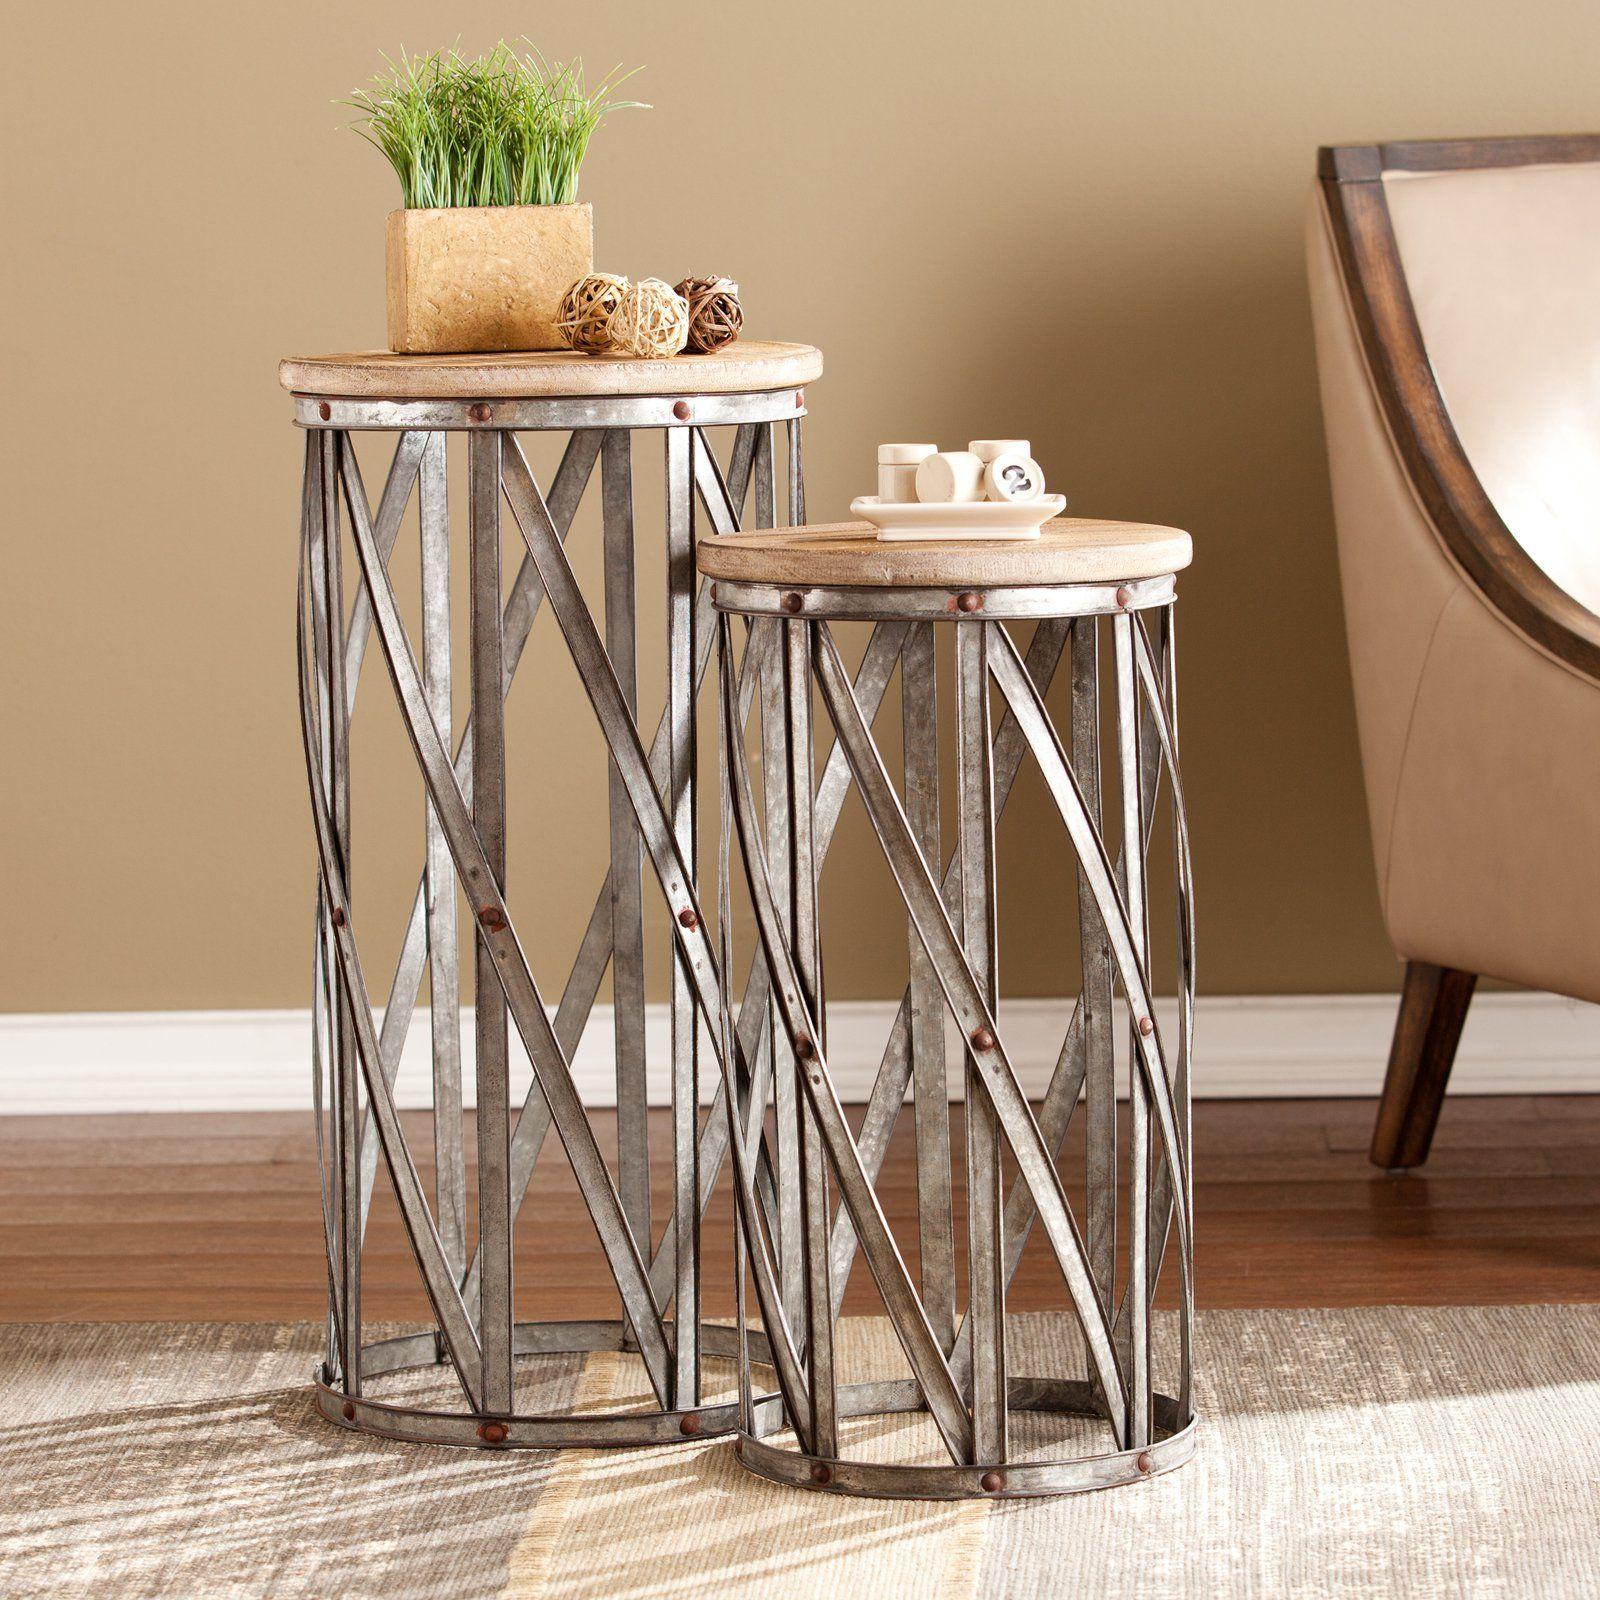 southern enterprises mencino accent table set twisted galvanized metal steel frames and black pedestal side external door threshold long thin coffee laura ashley dining chairs bar